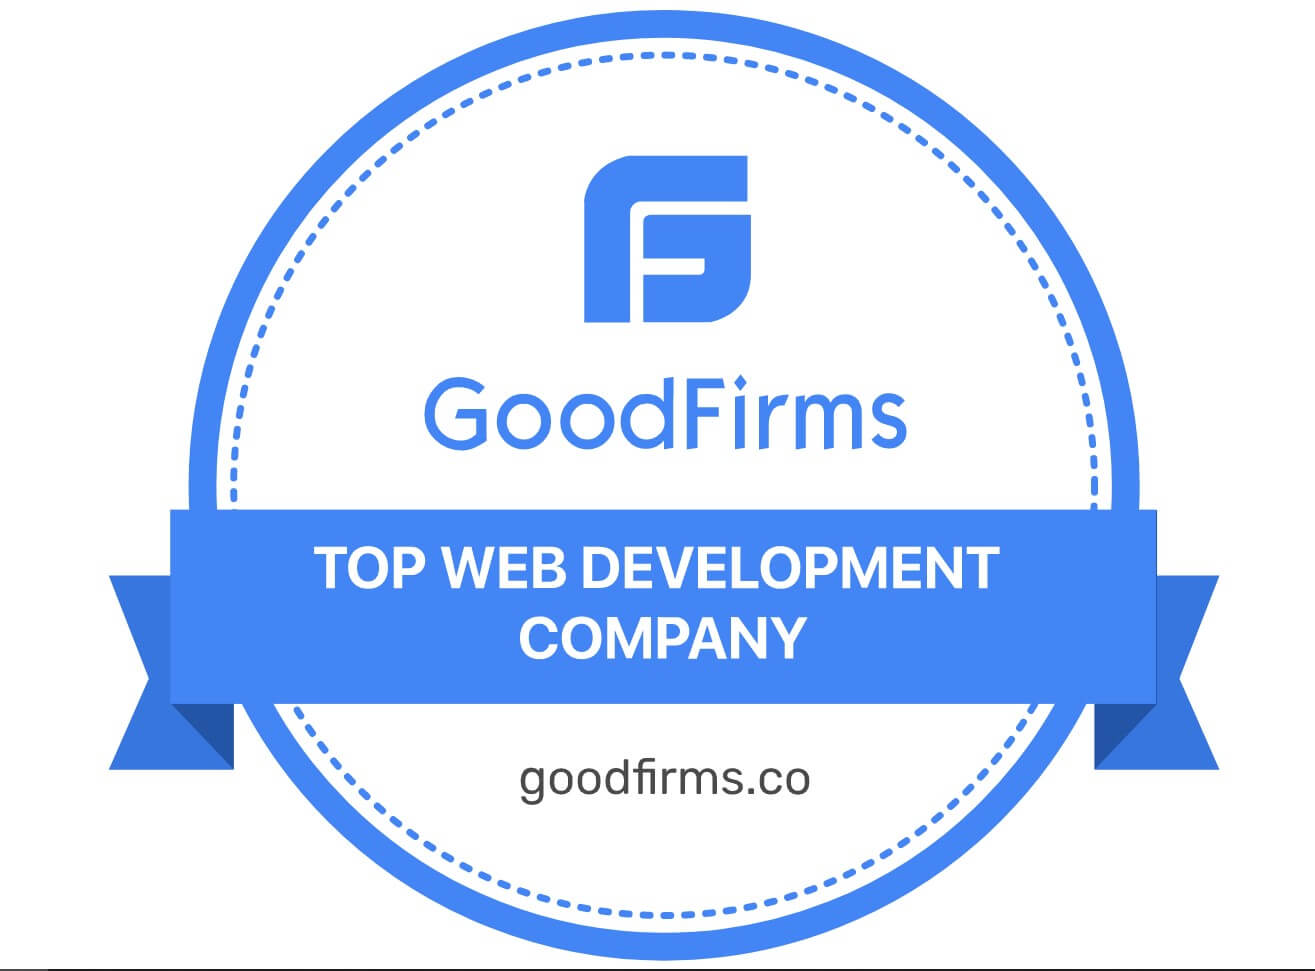 GoodFirms Top Web Development Company and Top Python Developers 2018